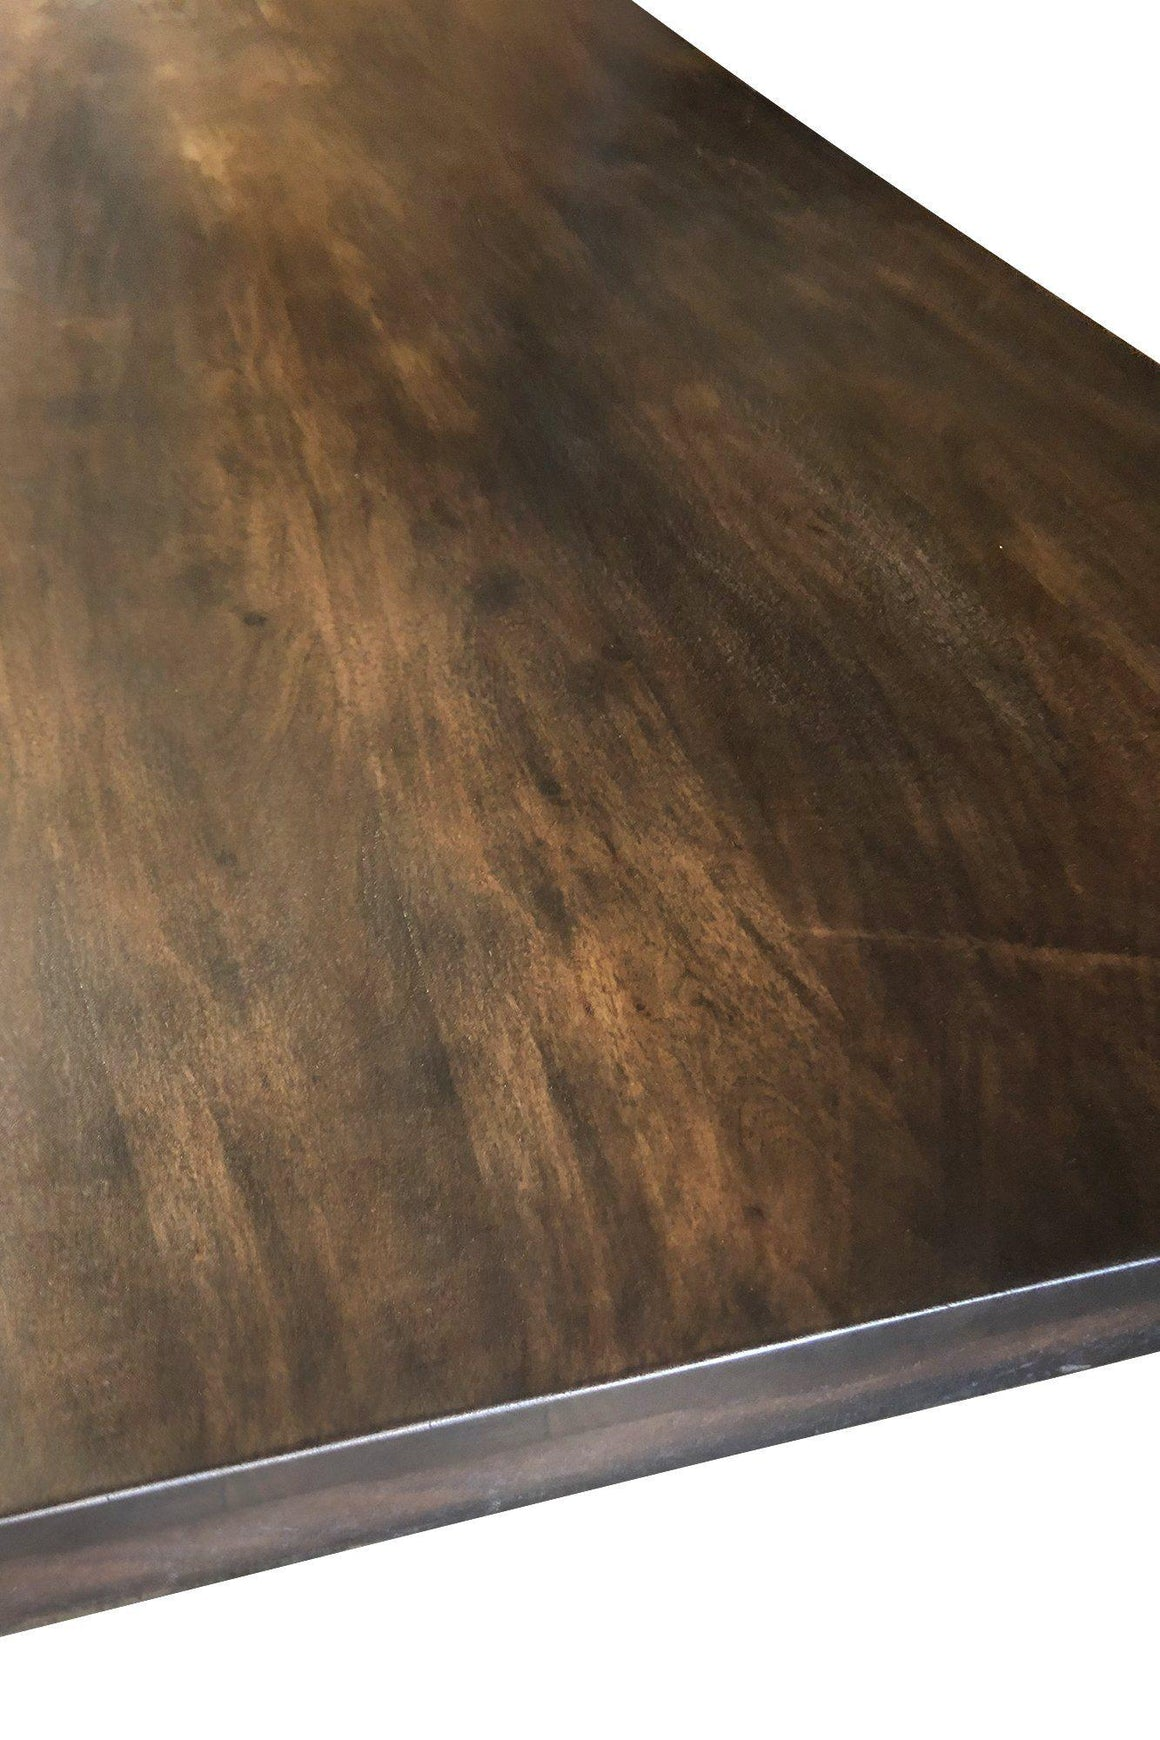 "Solid Acacia Wood Dining or Desk Top 80x40 2.25"" Steampunk Dark Stain Dining Table Rustic Deco"